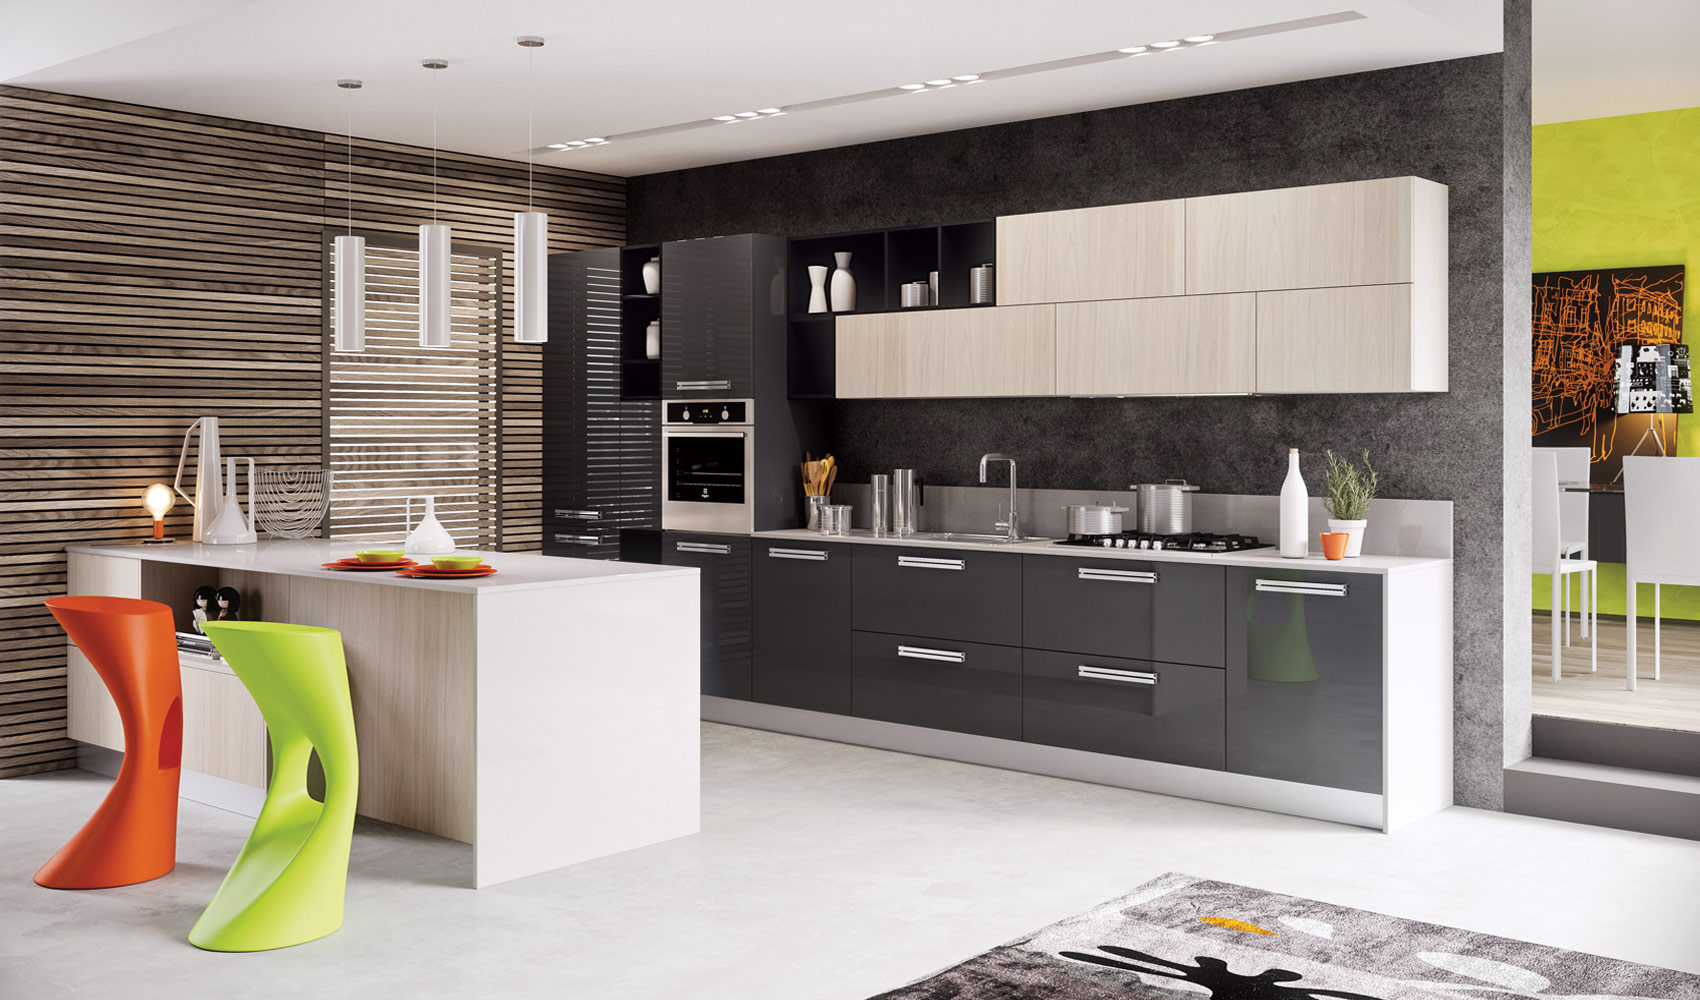 Contemporary kitchen design interior design ideas Modern kitchen design ideas